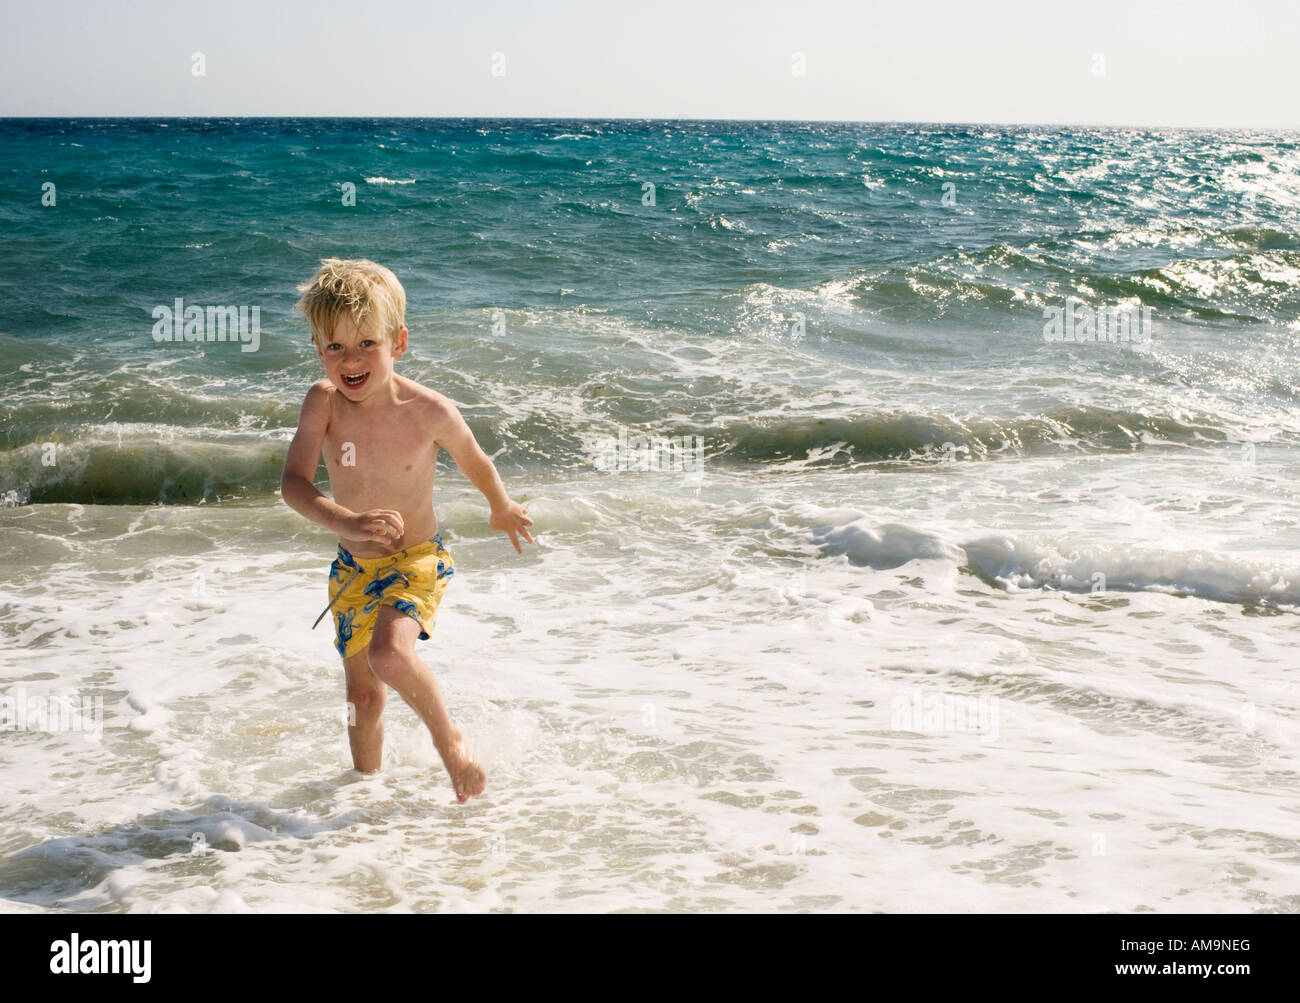 Young boy at the beach in shallow water smiling. Stock Photo